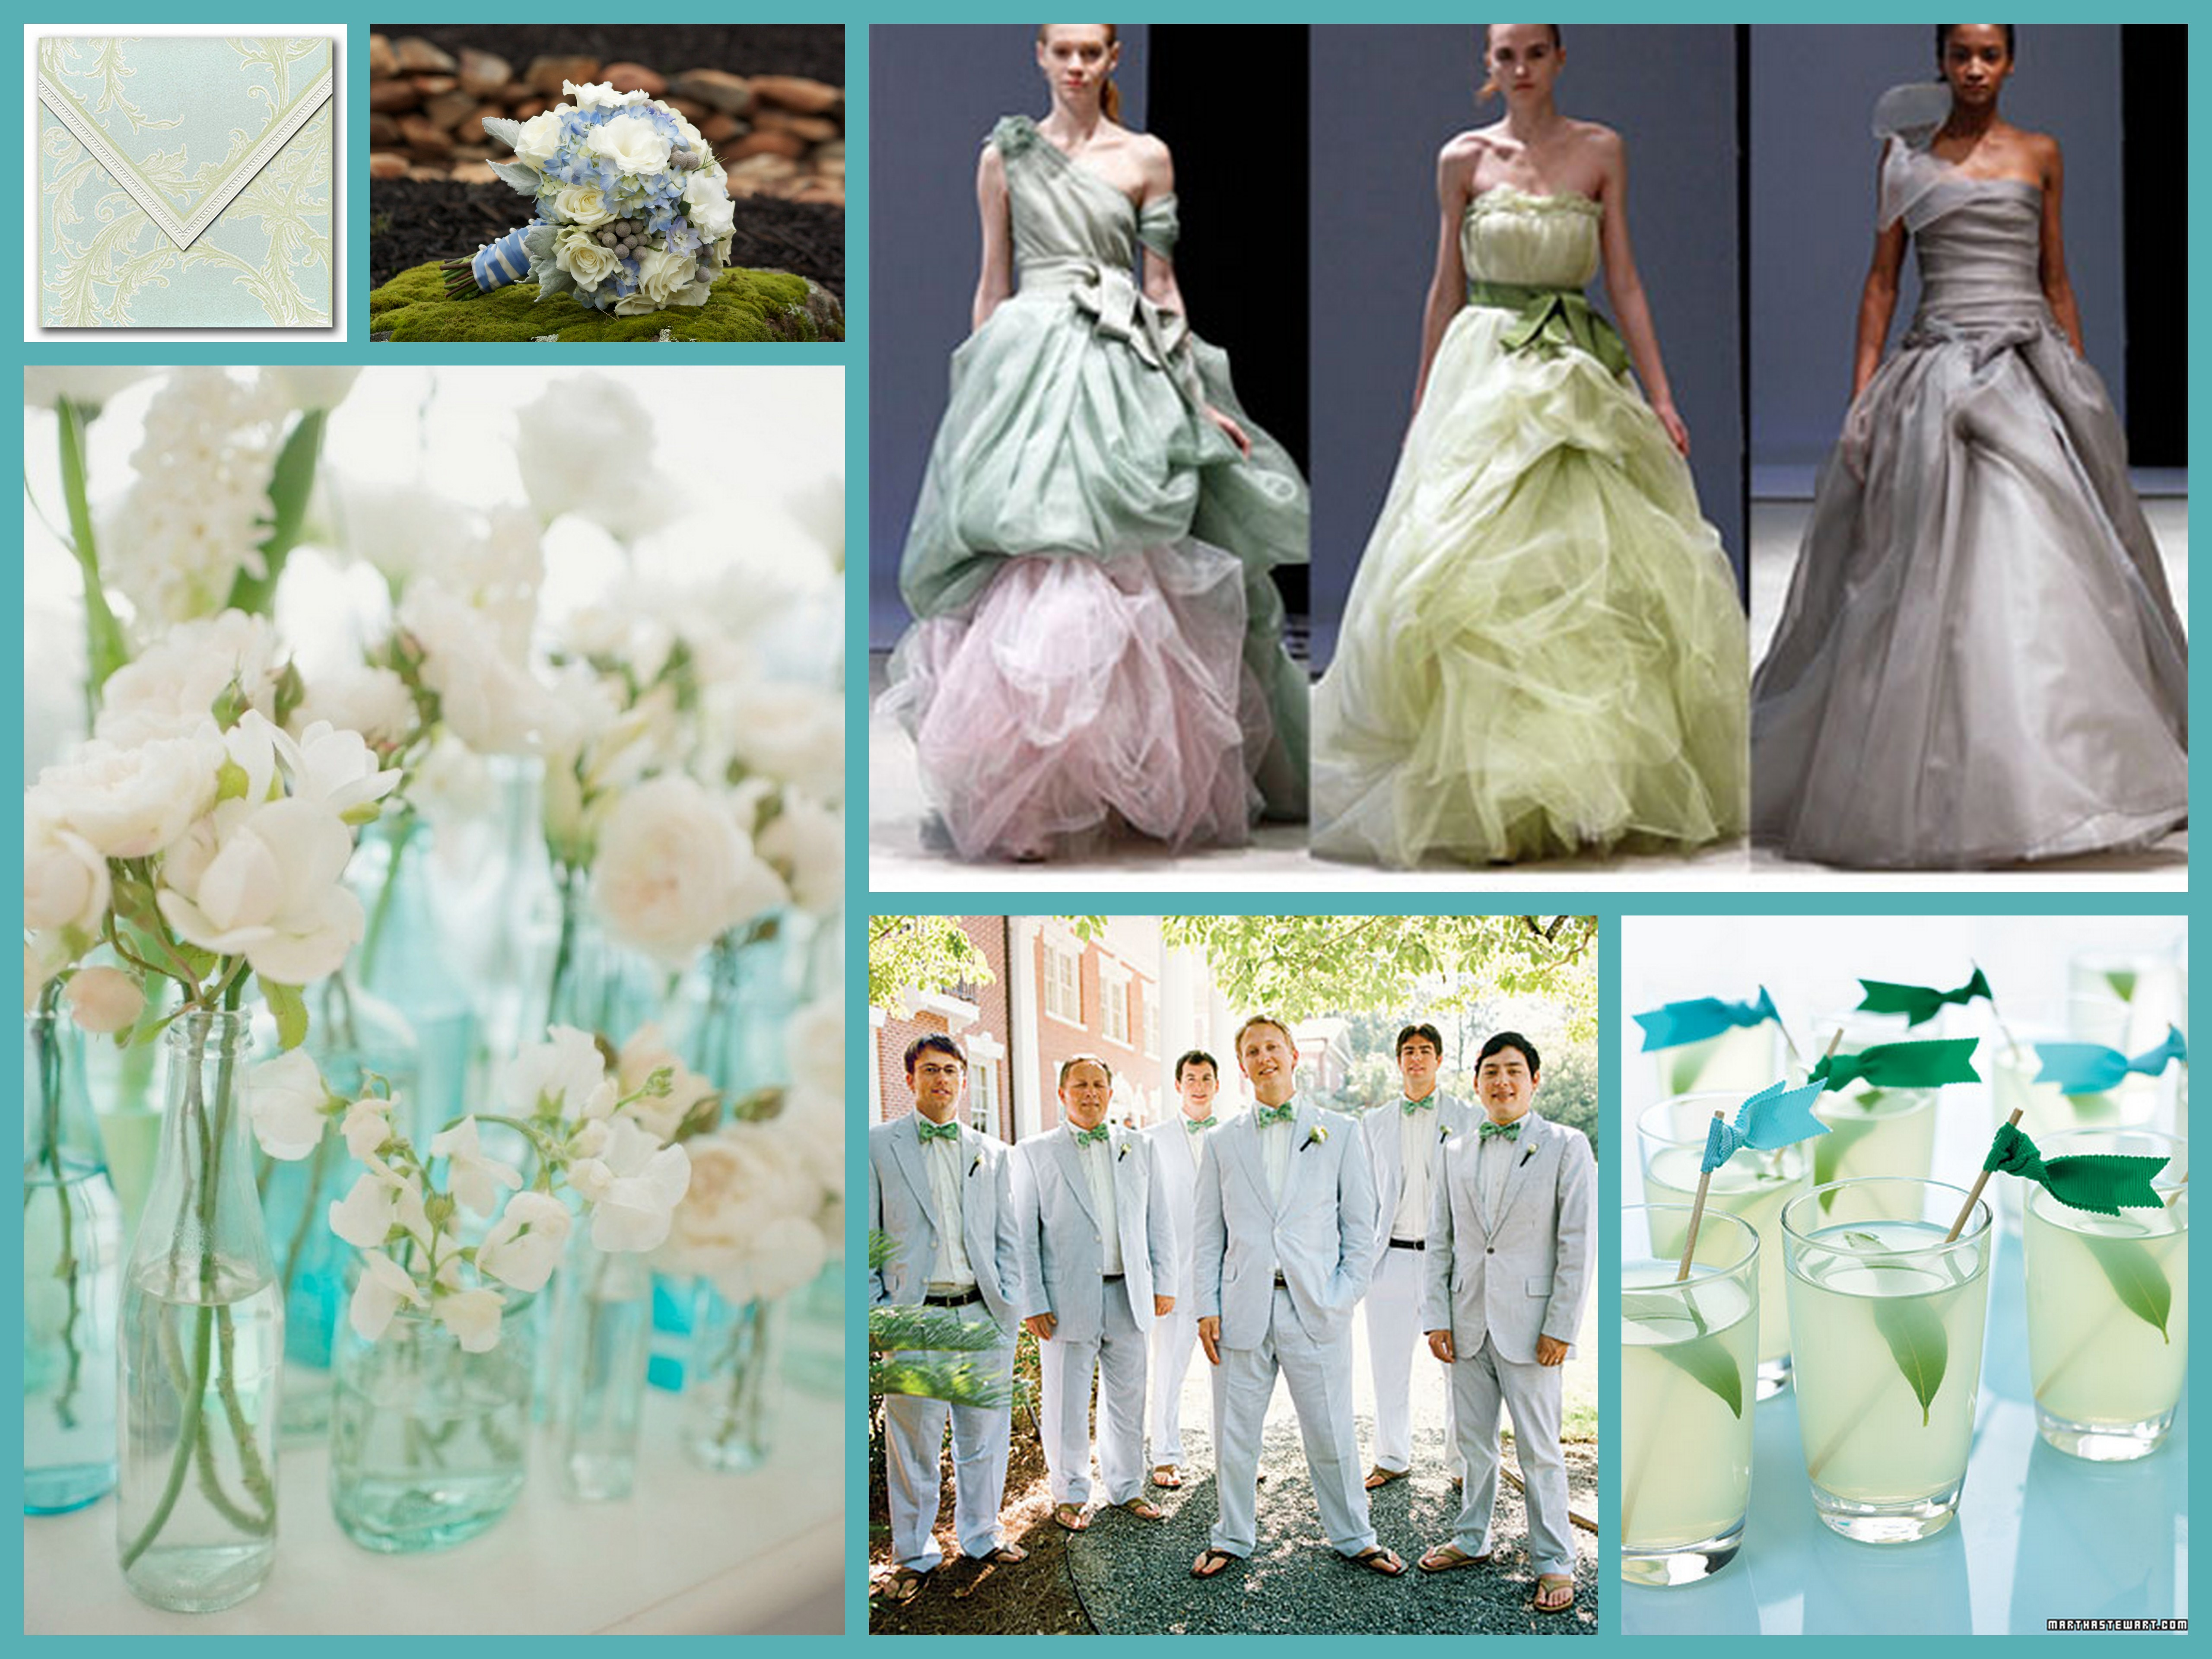 Turquoise beauty fantastical wedding stylings for Turquoise gold wedding theme